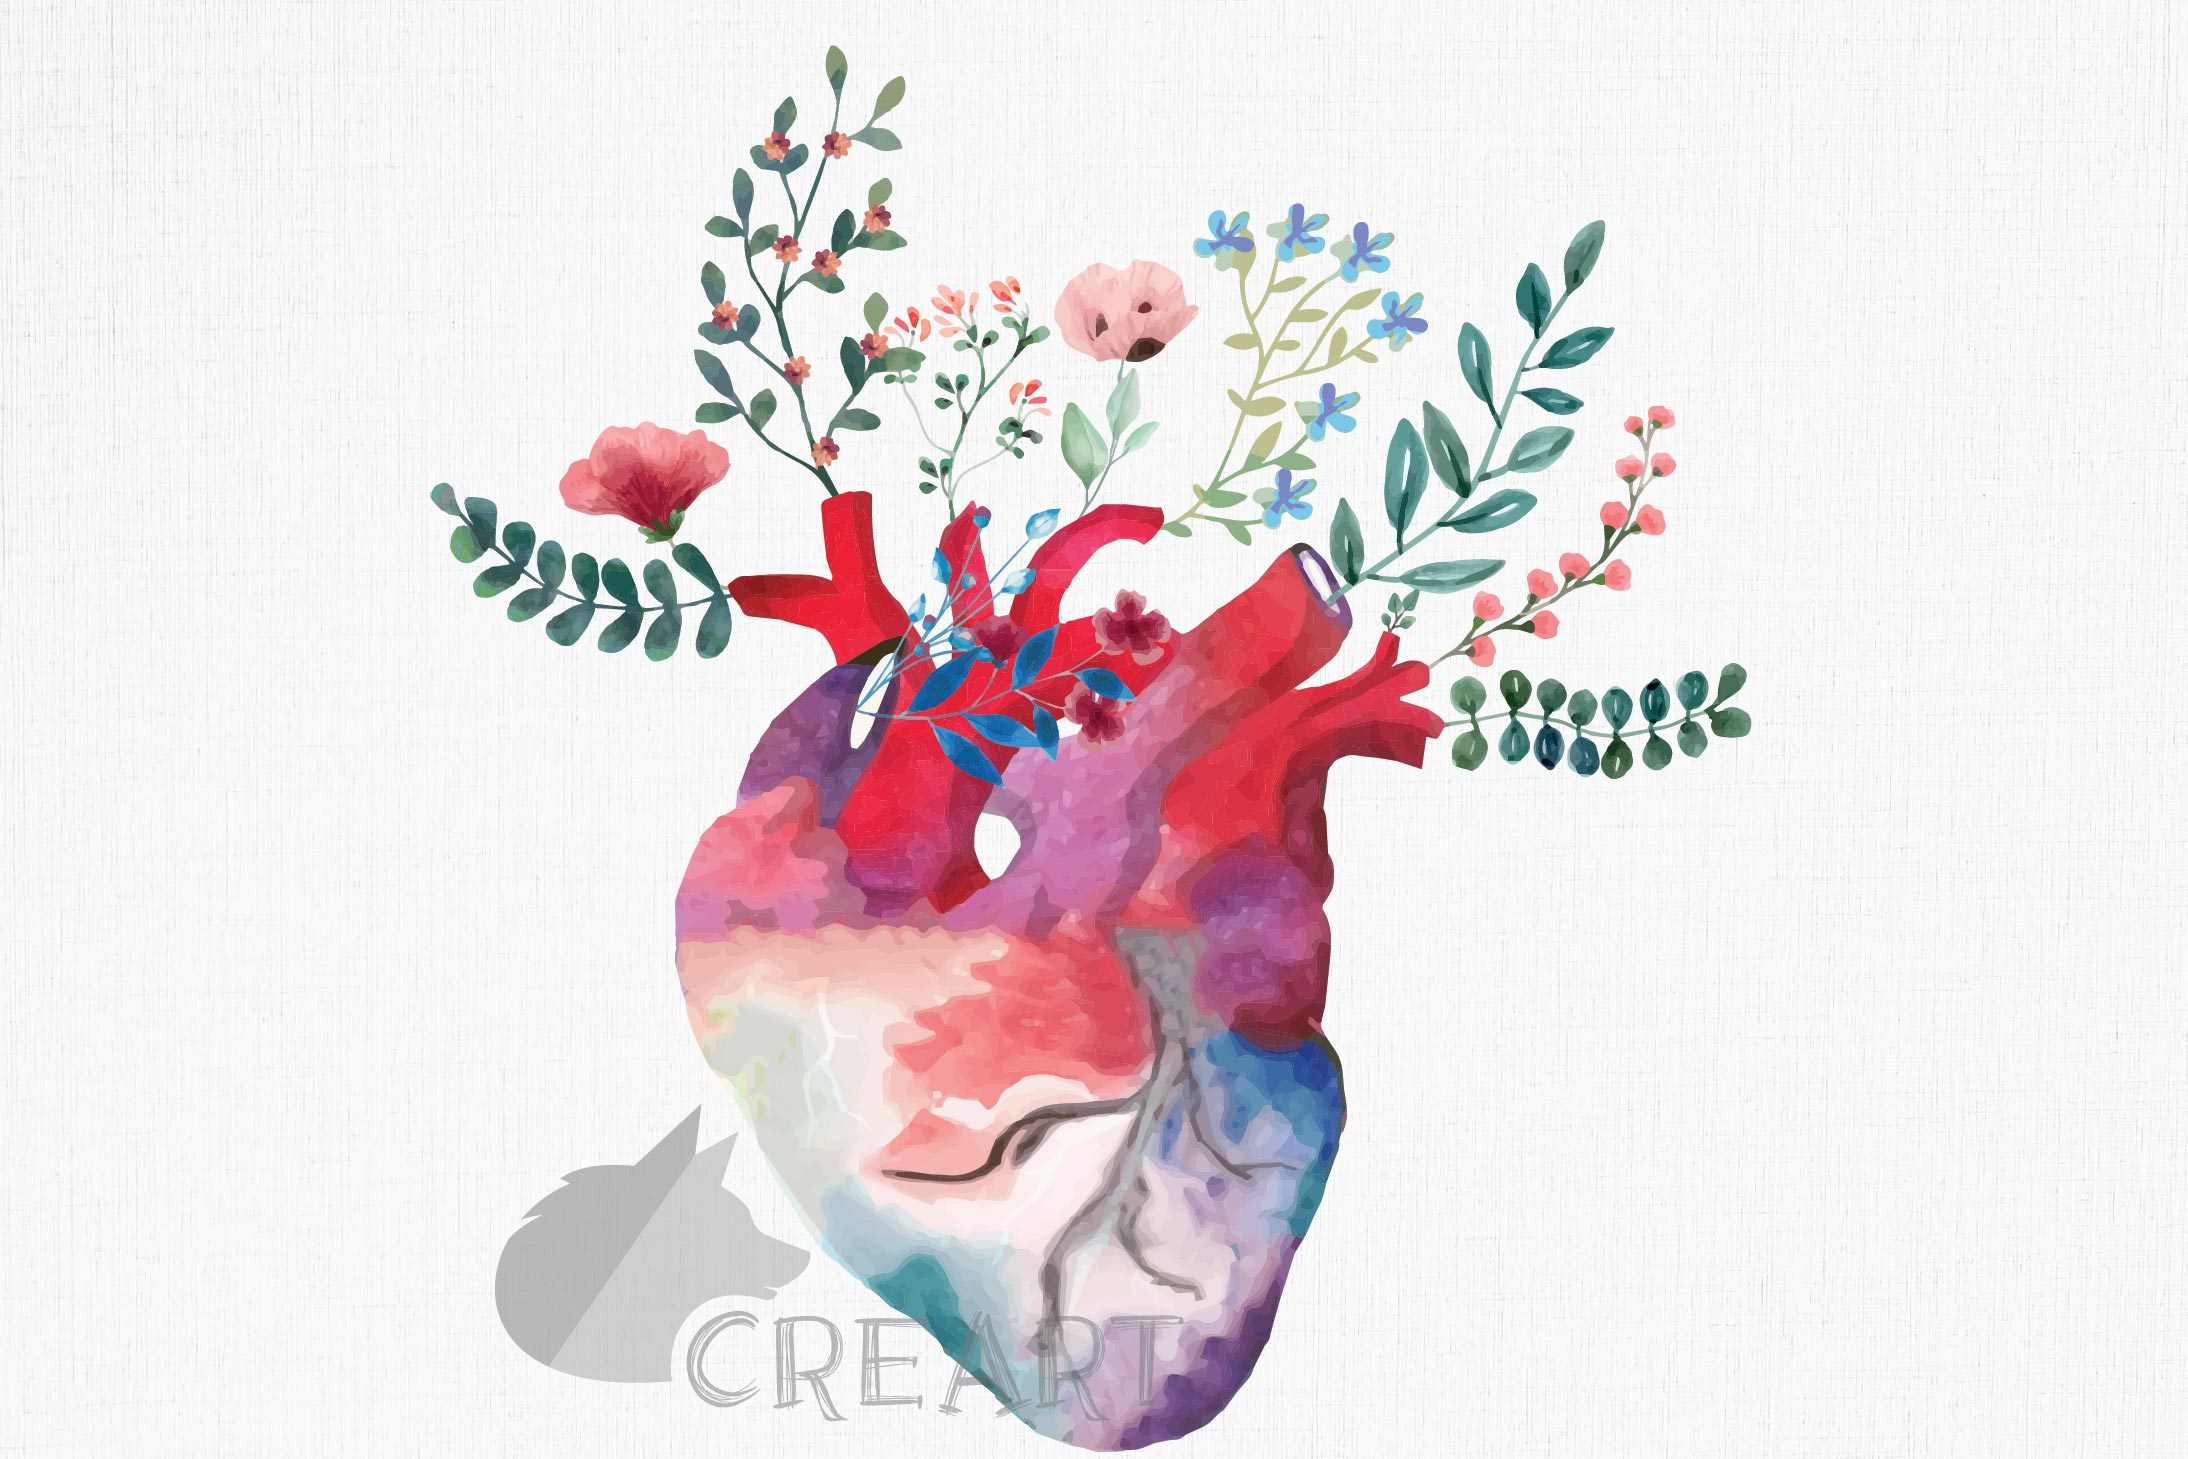 Flowering anatomical heart Valentine's day card design png. example image 1